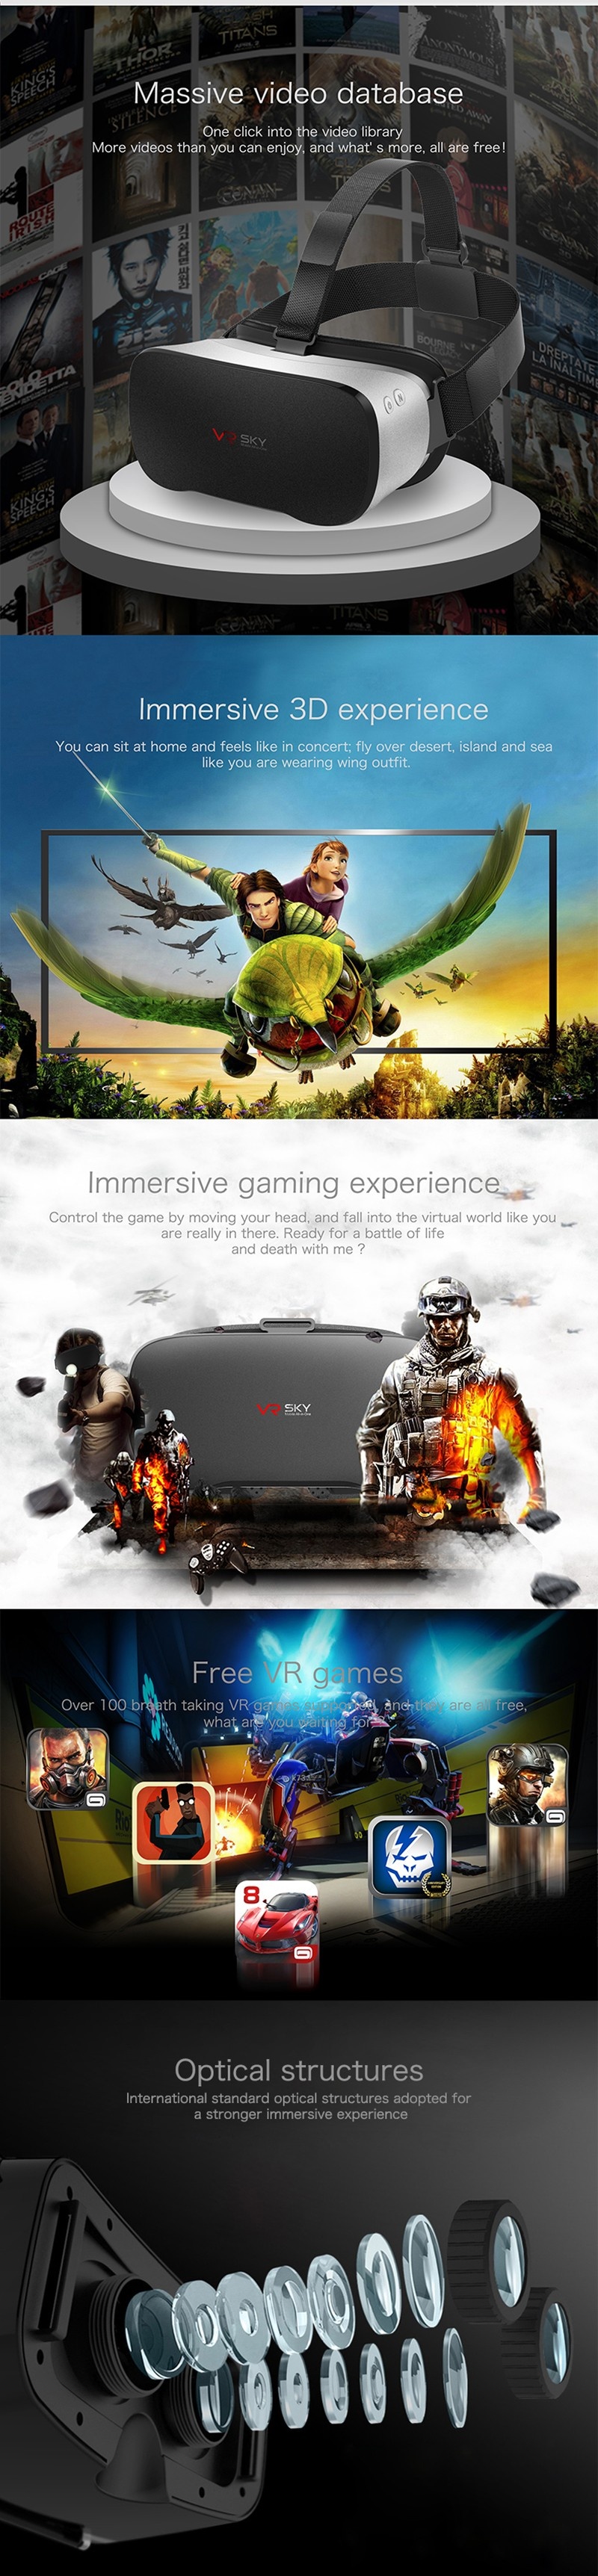 V3 All In One Headset Allwinner H8VR Octa Core 5.5 Inches 1080P FHD Display VR Immersive 3D Glasses Virtual Reality Headset